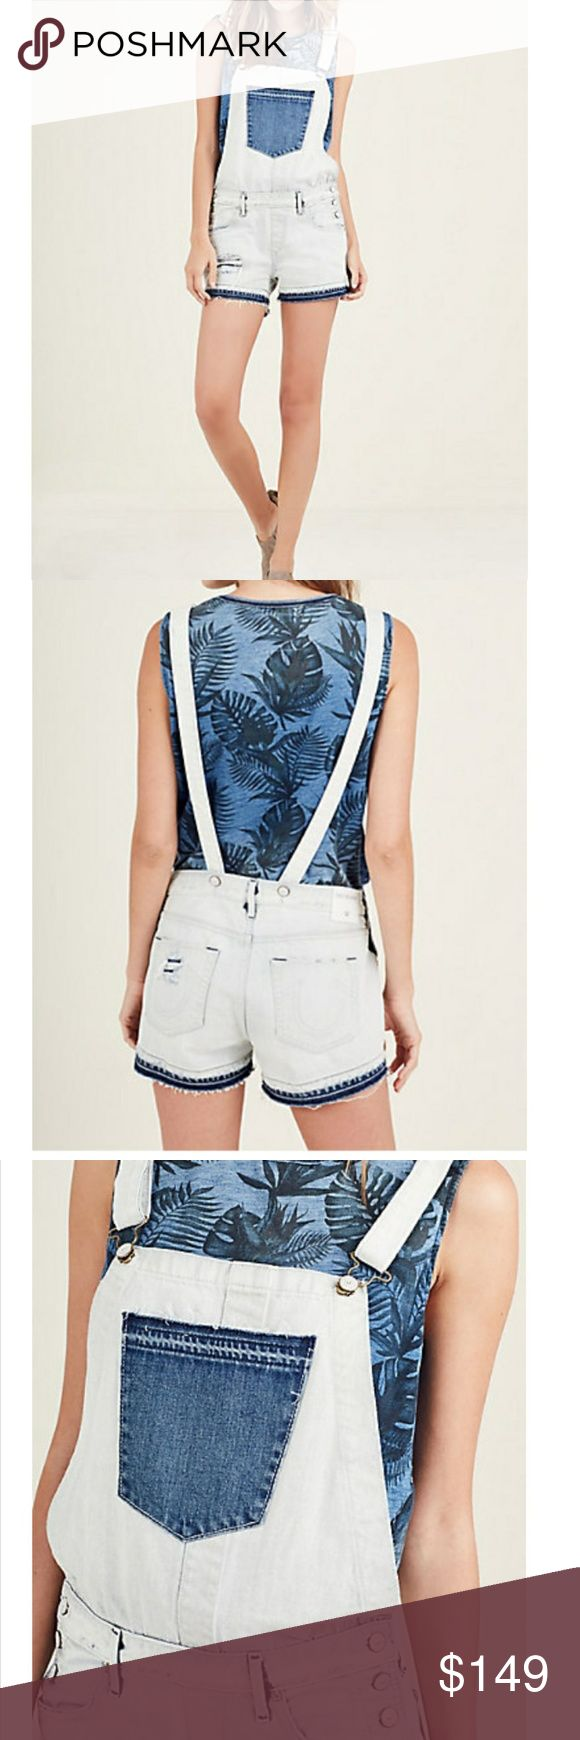 True Religion Overall Shorts Many sizes Today Only True Religion Overall Shorts. Size 23 -31 available. Msg or comment size.  Crisp white denim, accented with large, single front pocket and hem details. 100% Cotton. Imported. Today Only Sales! True Religion Other